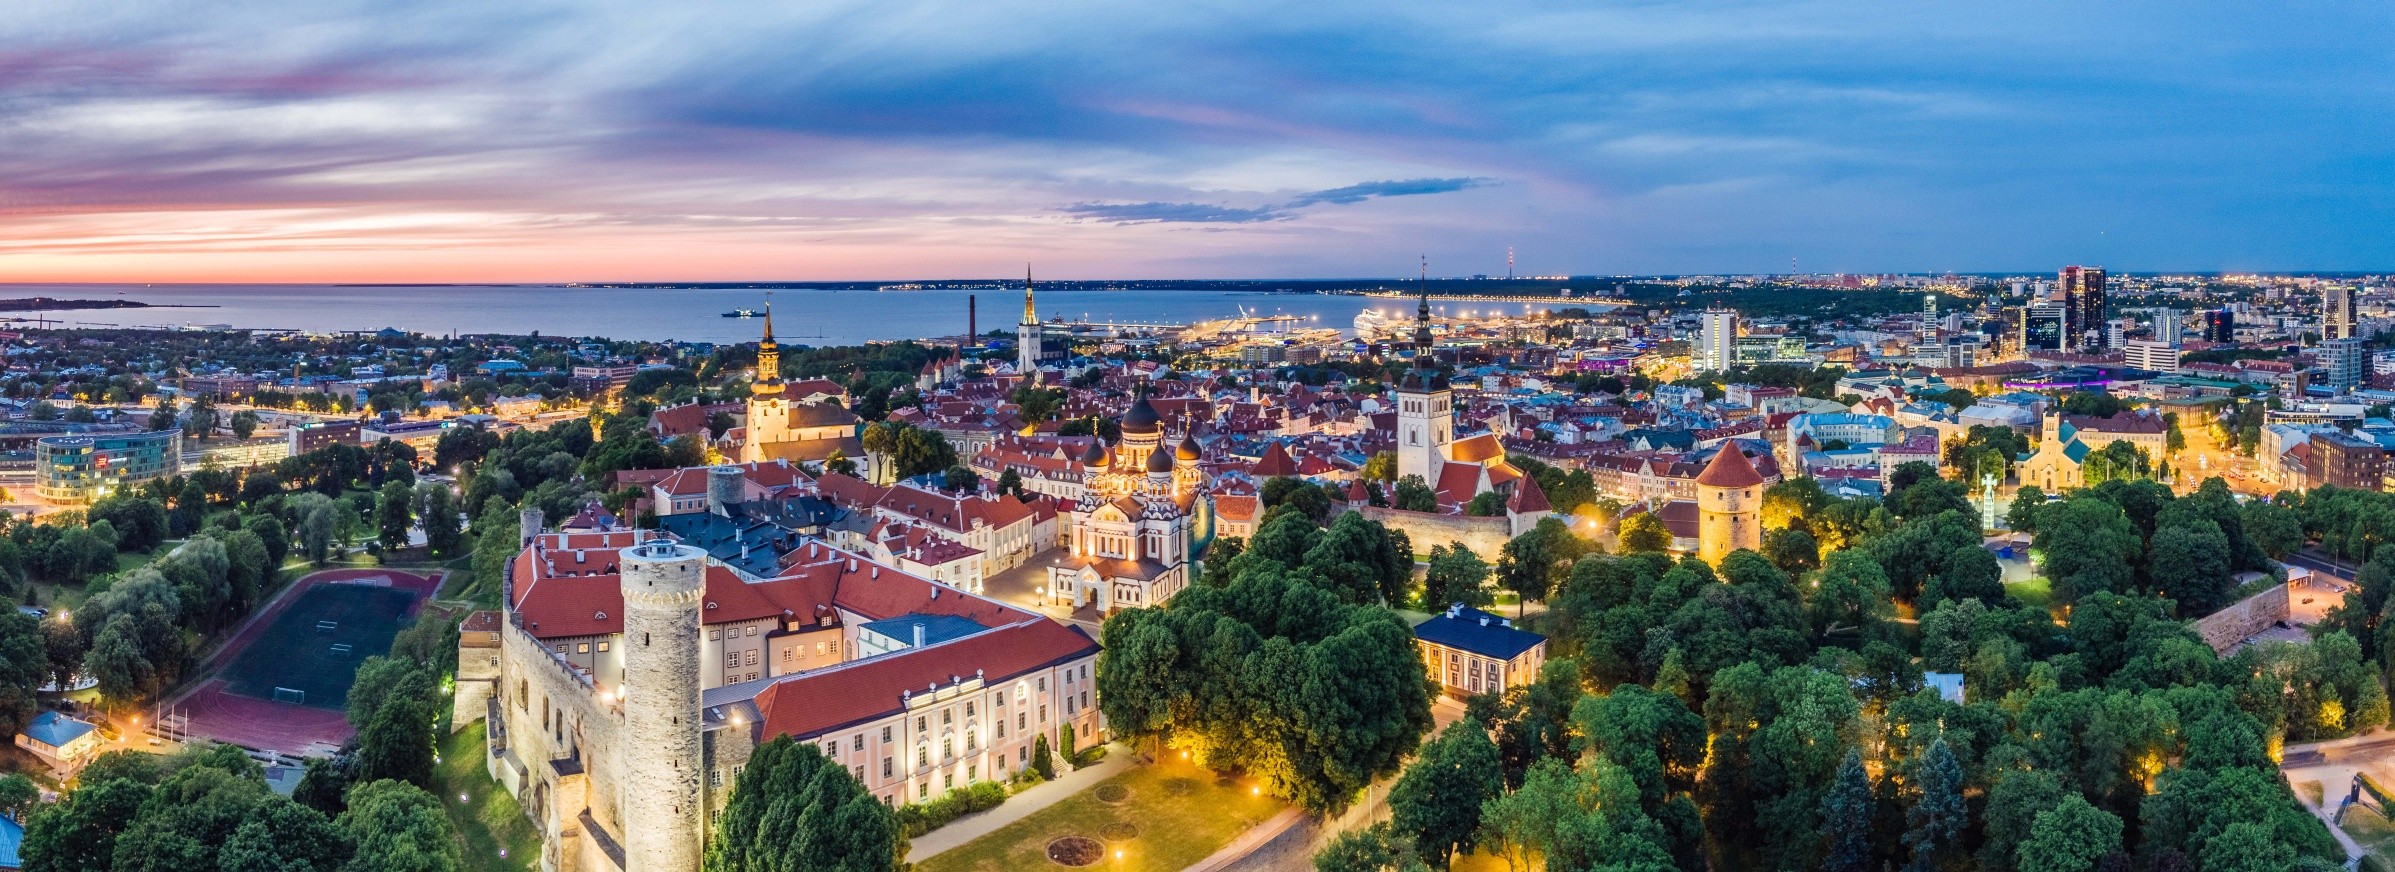 tallinn_old_town_website.jpg